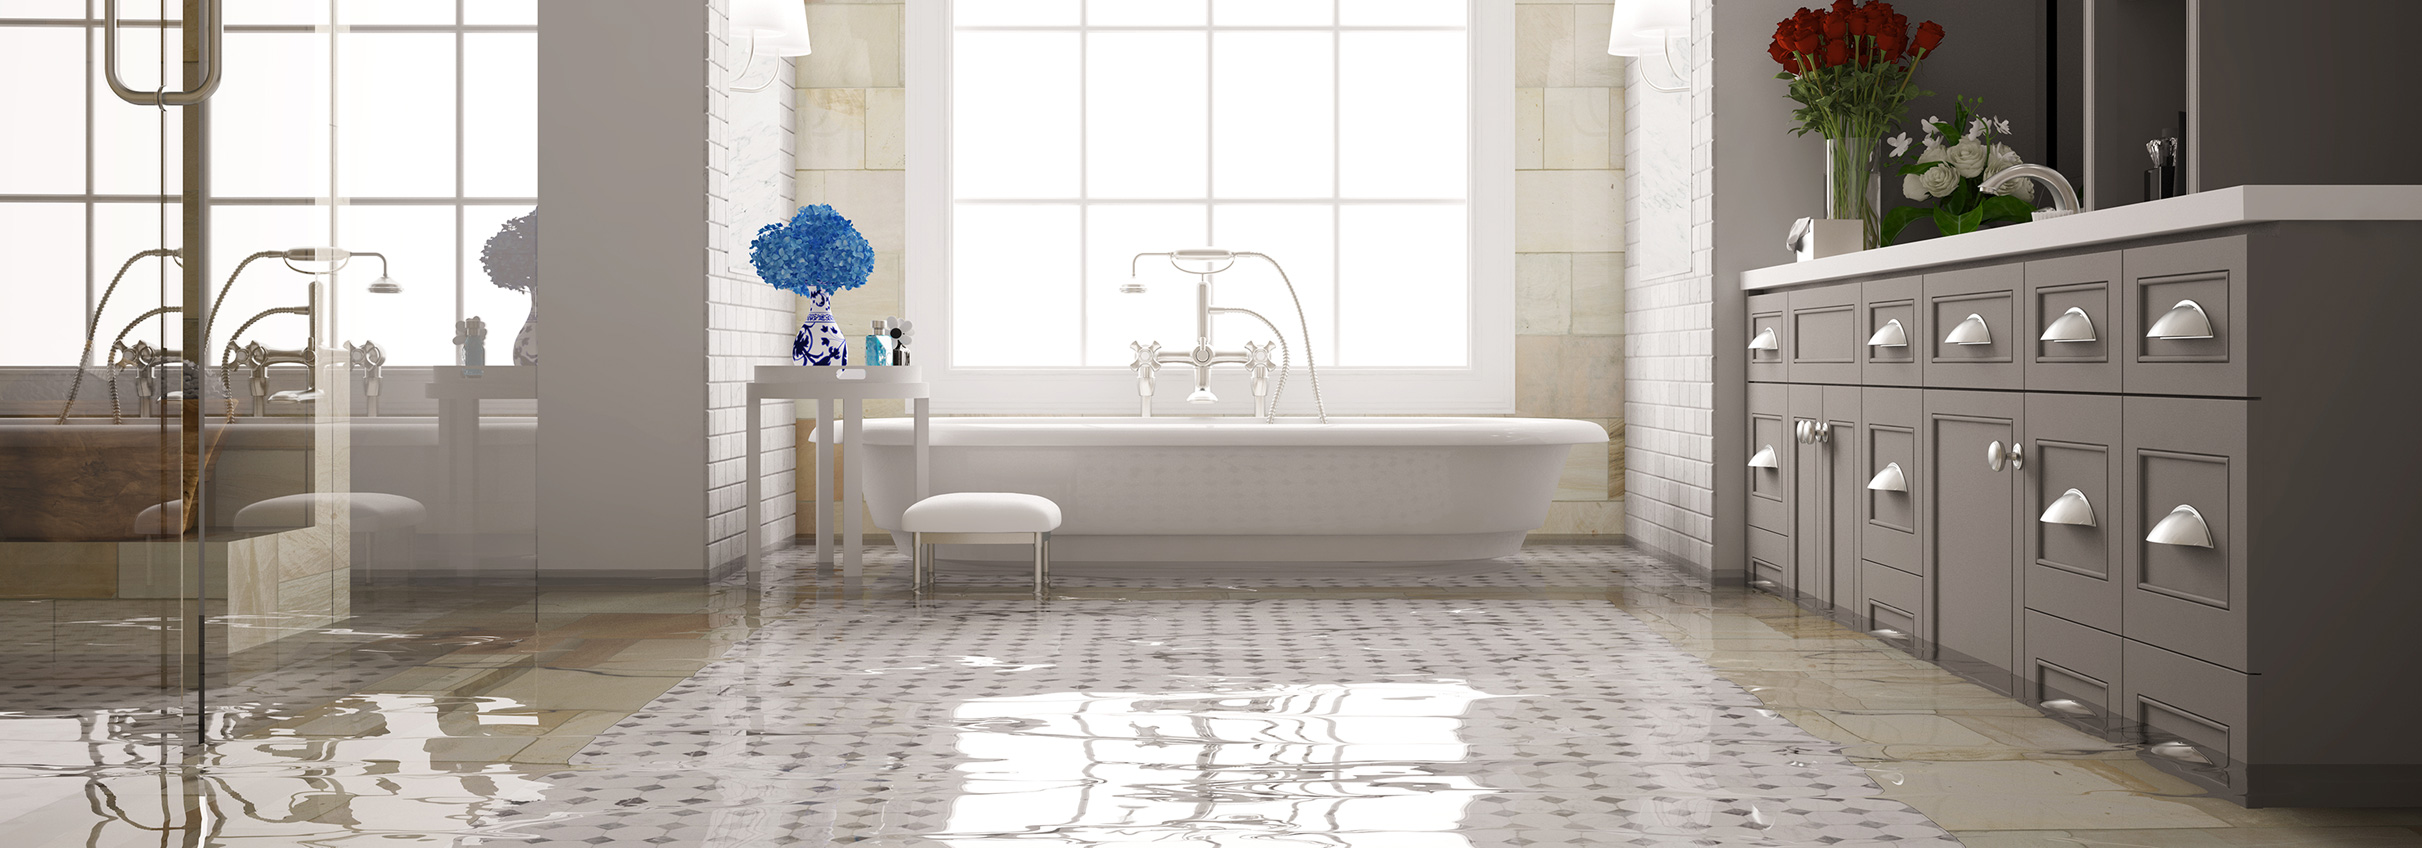 call us today 800-801-2211 over image of flooded bathroom